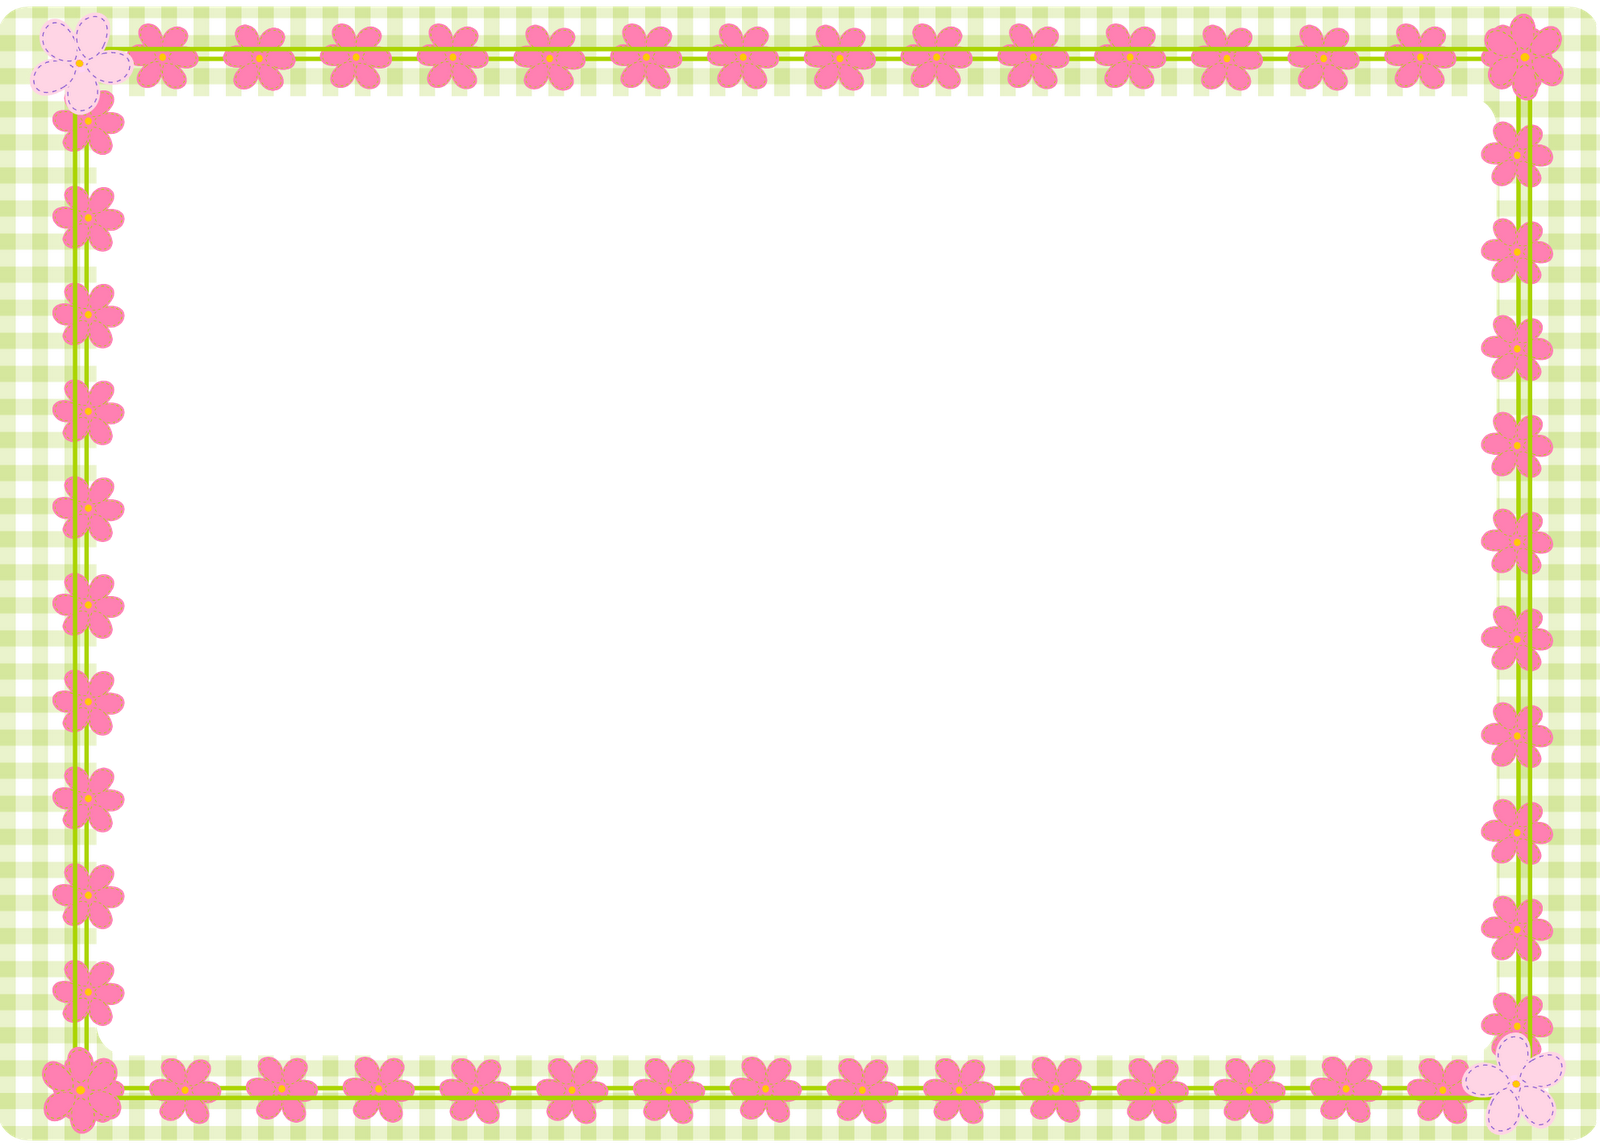 Square clipart background. Frame transparent png frames